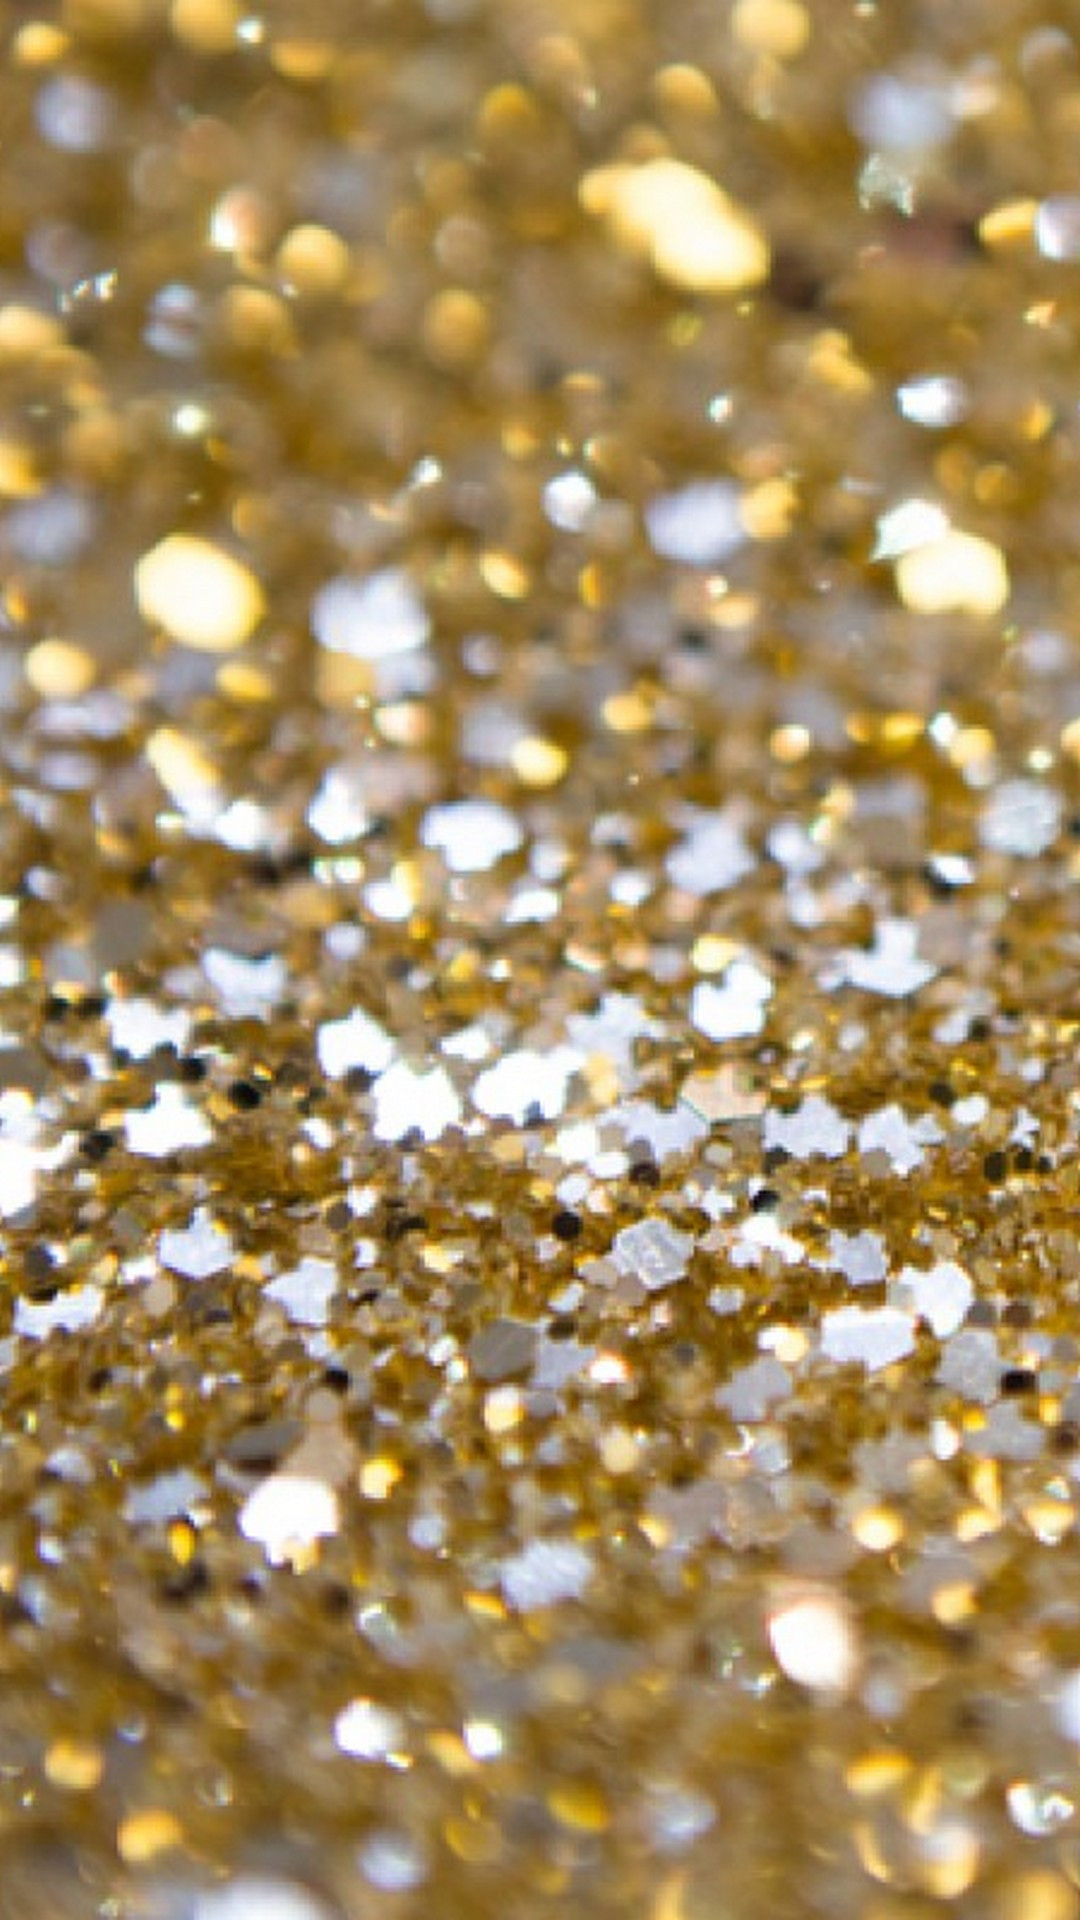 Res: 1080x1920, Gold Sparkle iPhone Backgrounds Hd Lovely Full Hd Wallpapers º °'€'' ¸